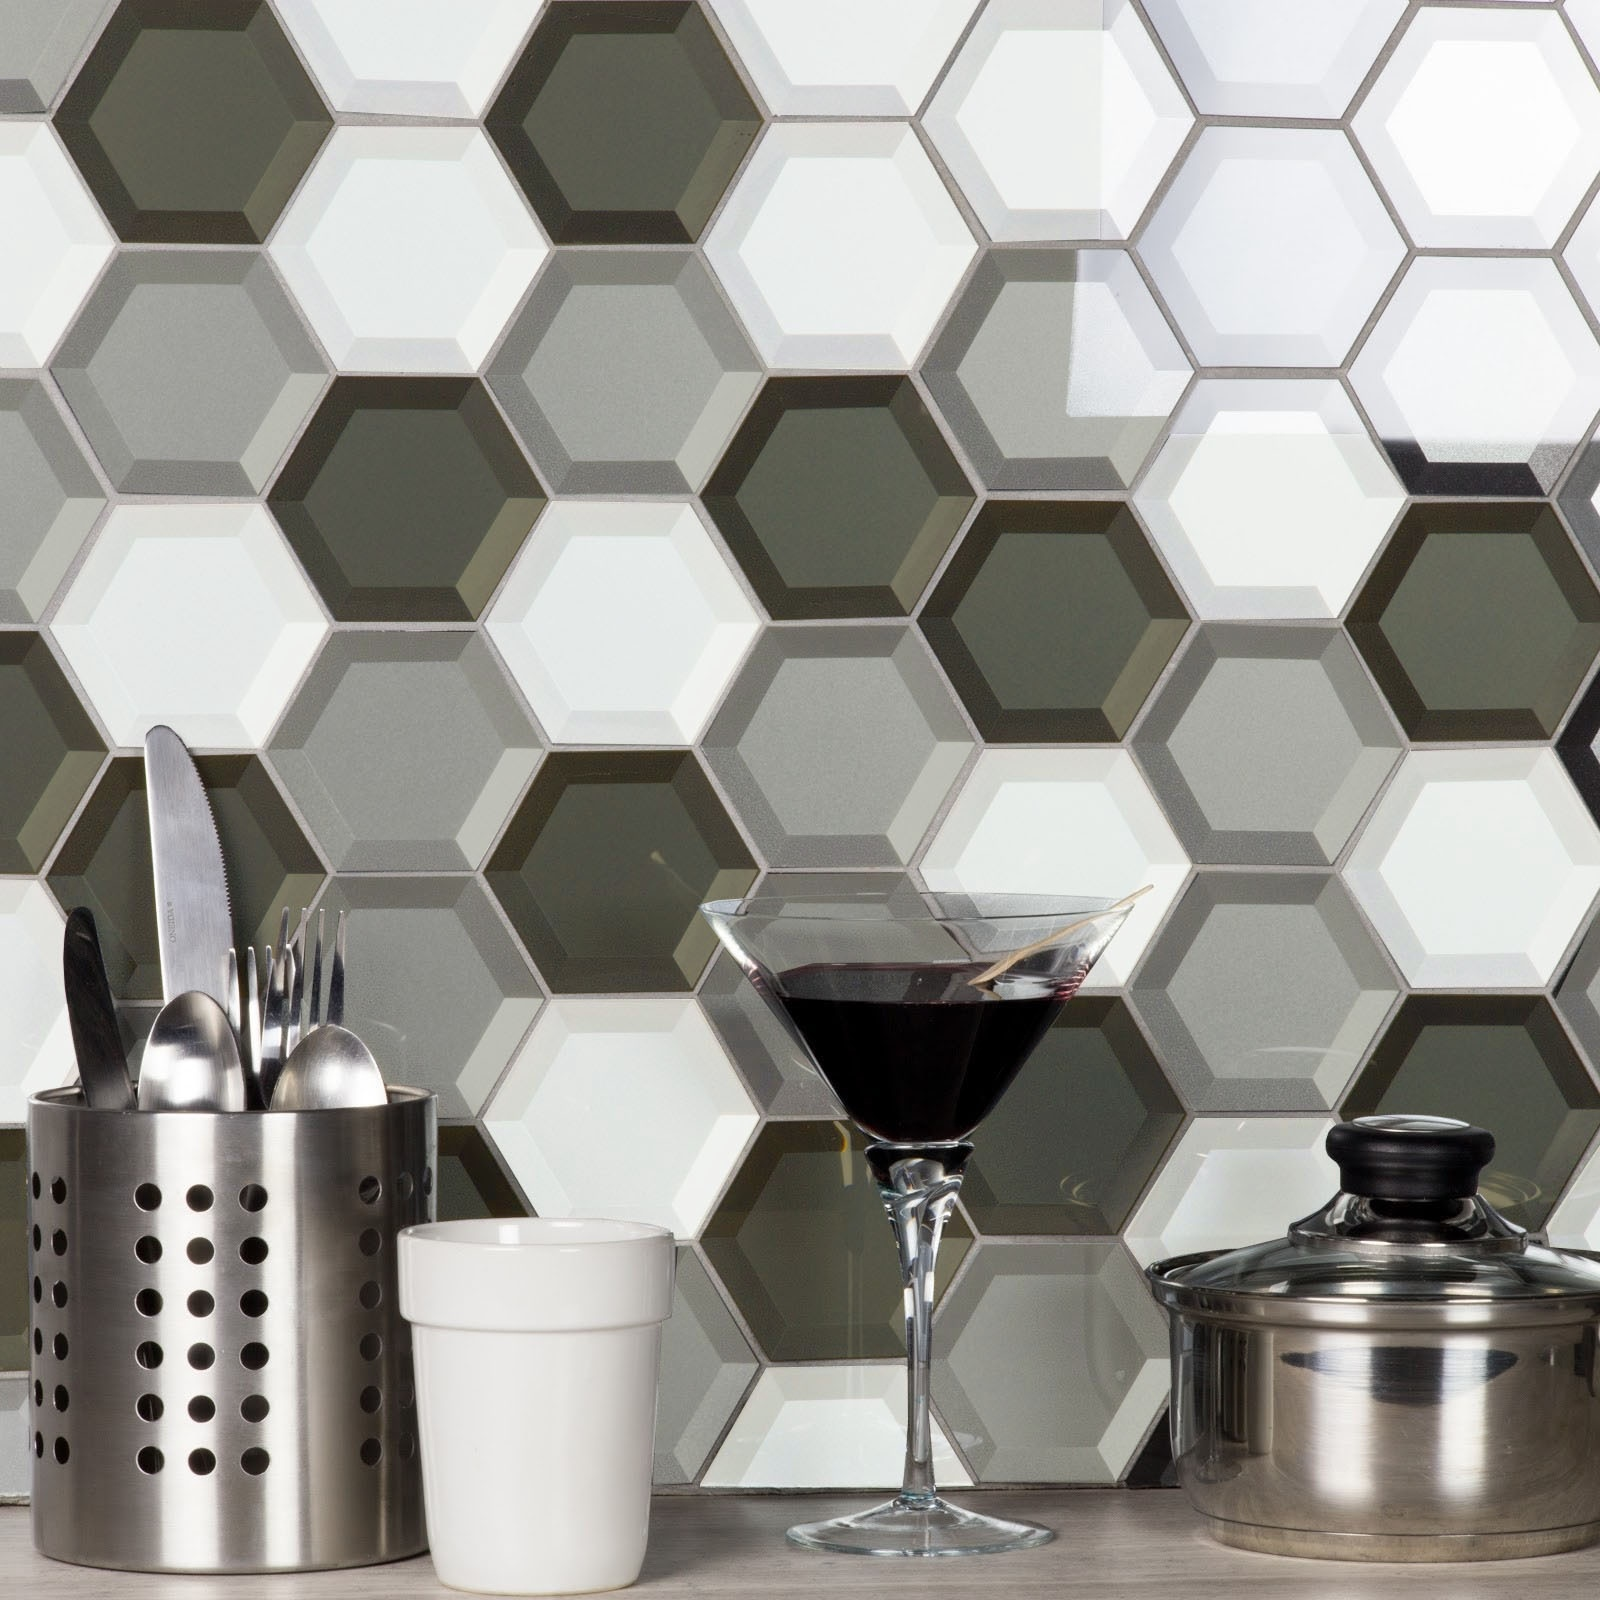 "Forever 3"" x 3"" Beveled Gray Glass Hexagon Backsplash Mosaic Wall Tile"